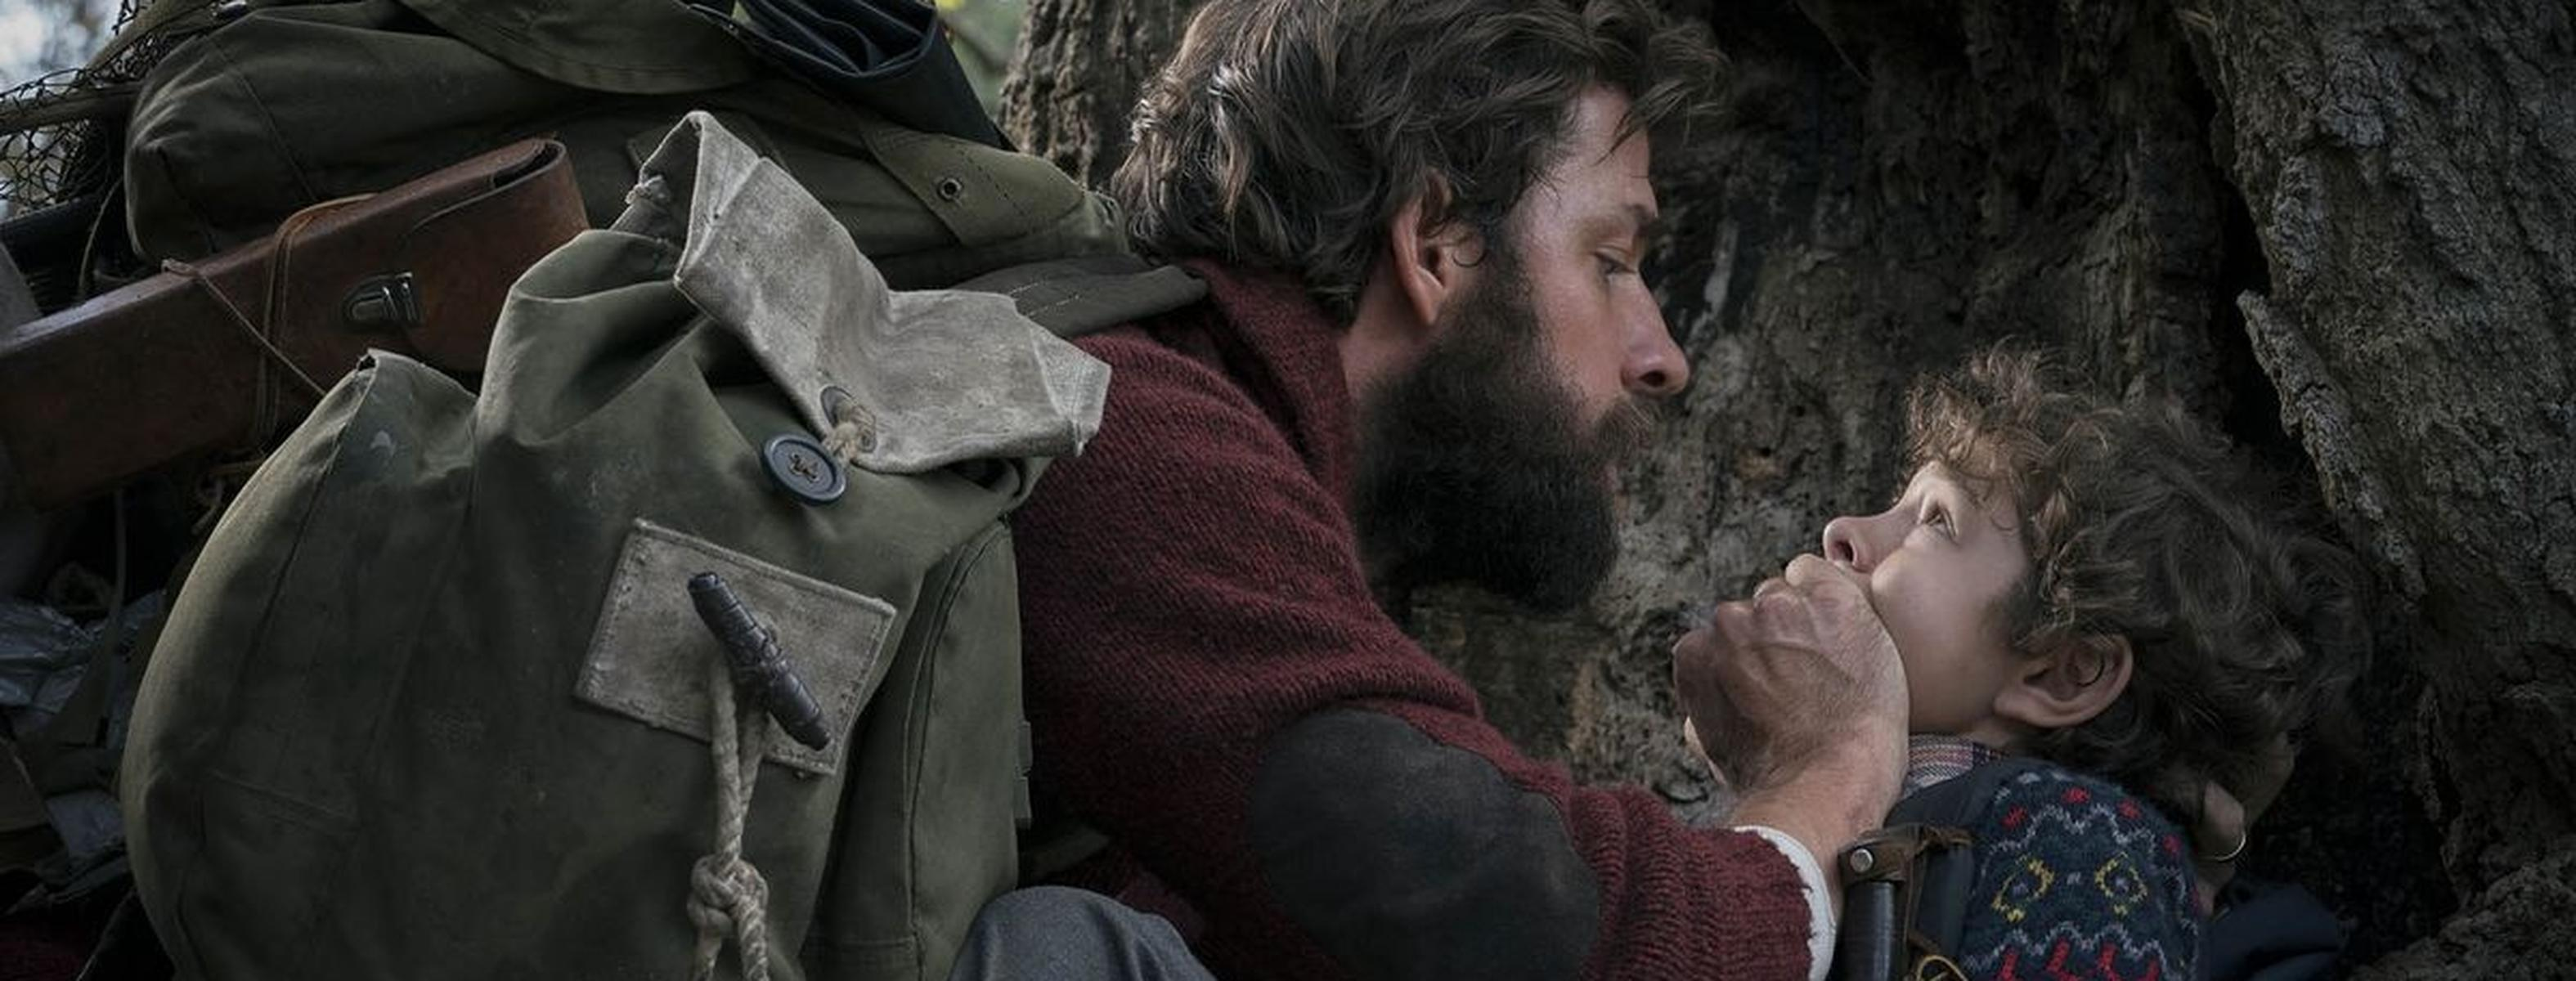 Greenlit   A Quiet Place  Sequel is Coming + Ryan Murphy s  Hollywood  Goes  to Netflix f7e2e769ecb27